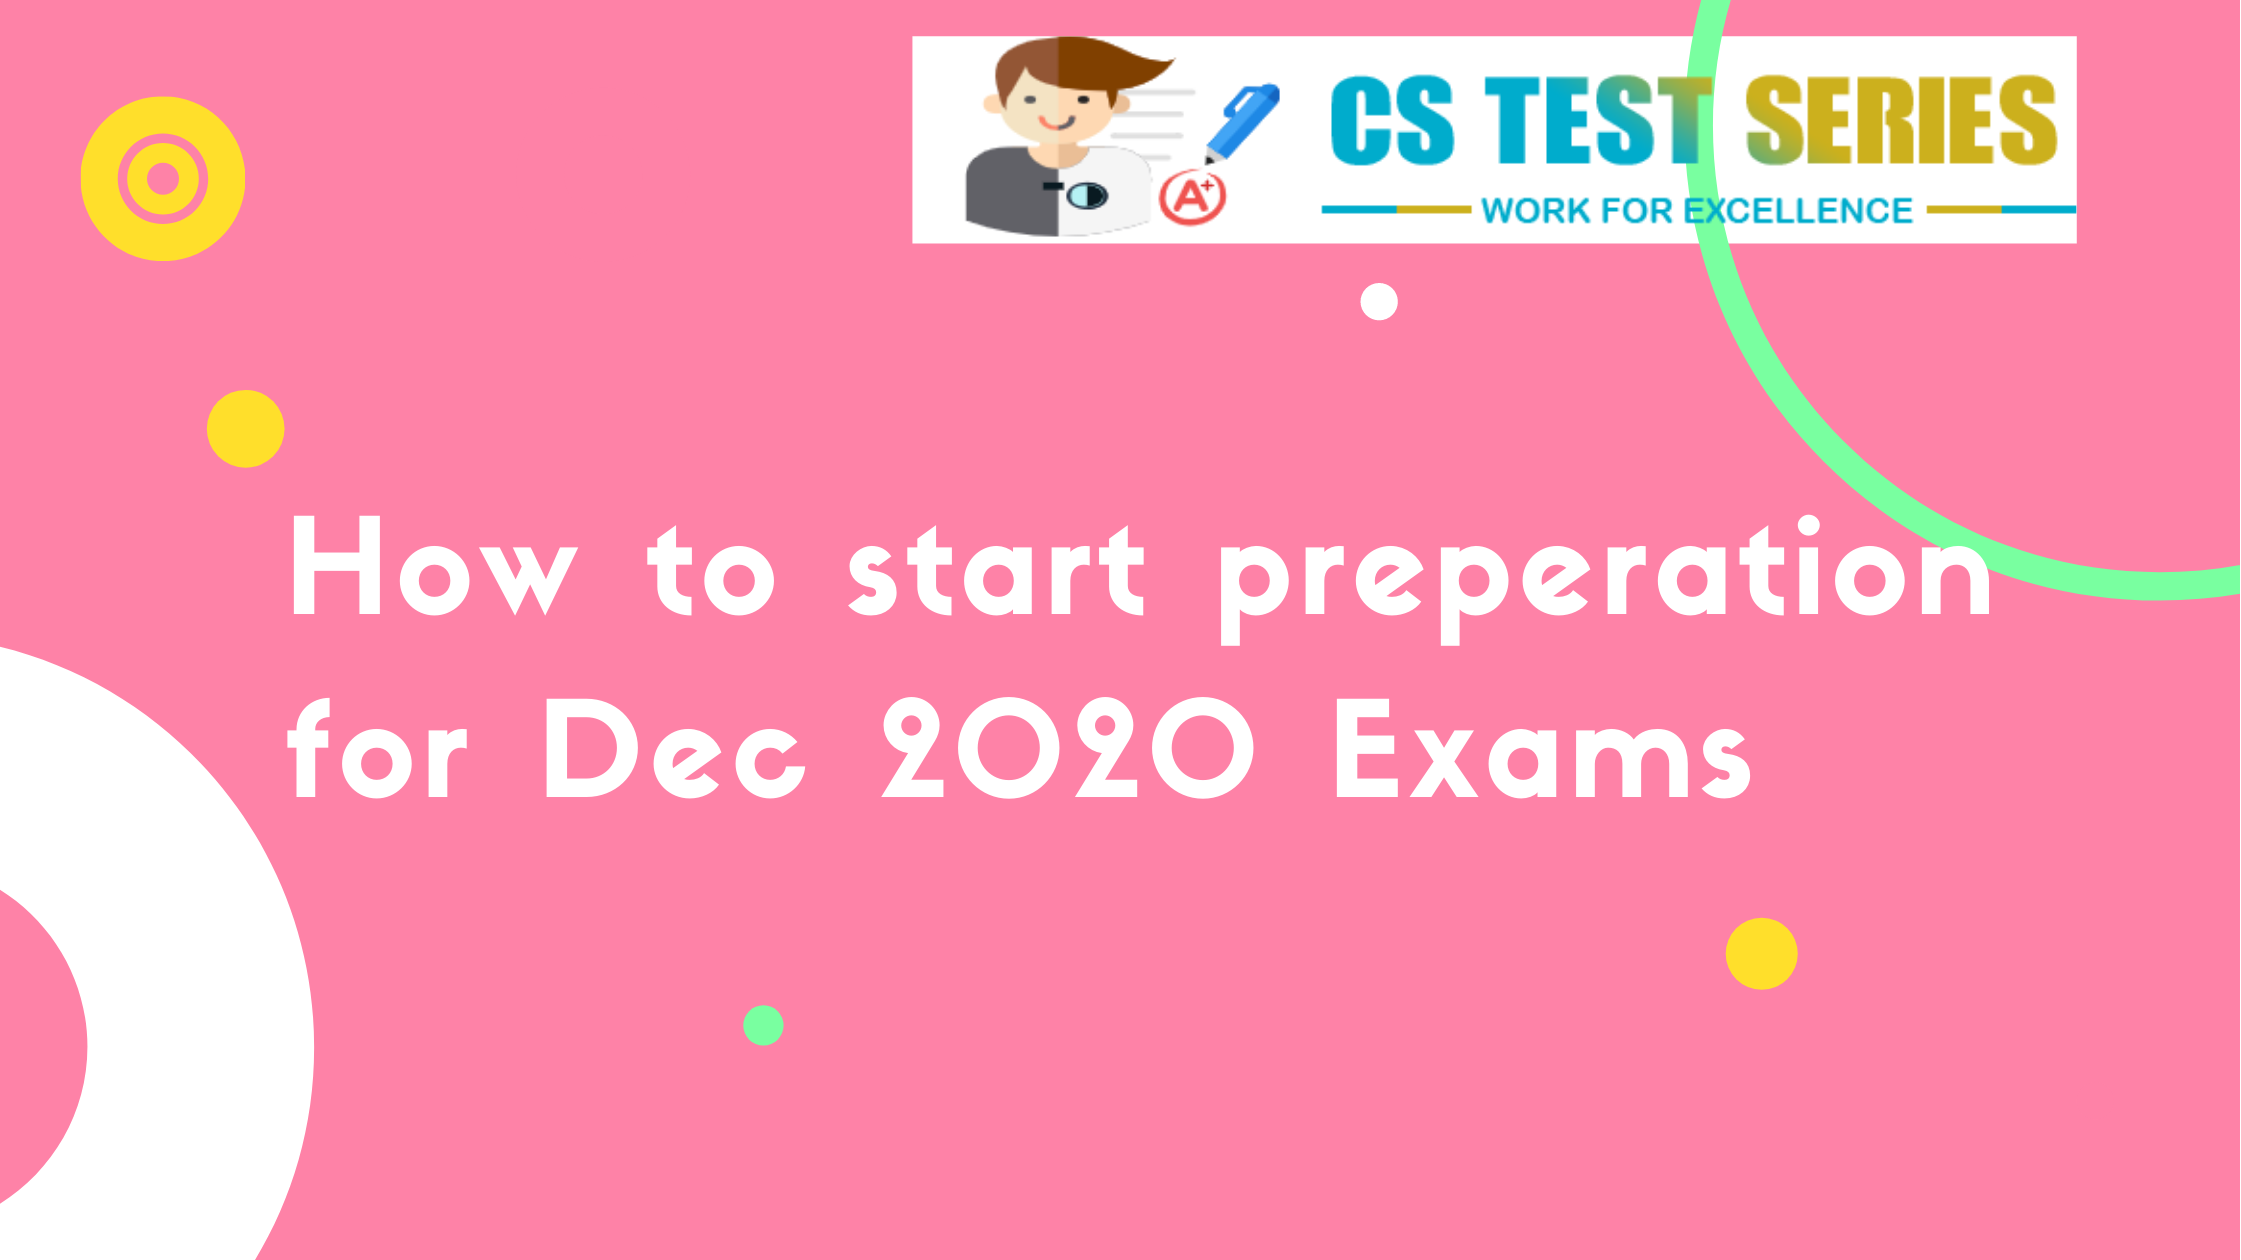 Exam Preparation For December 2020 Students | CS Test Series